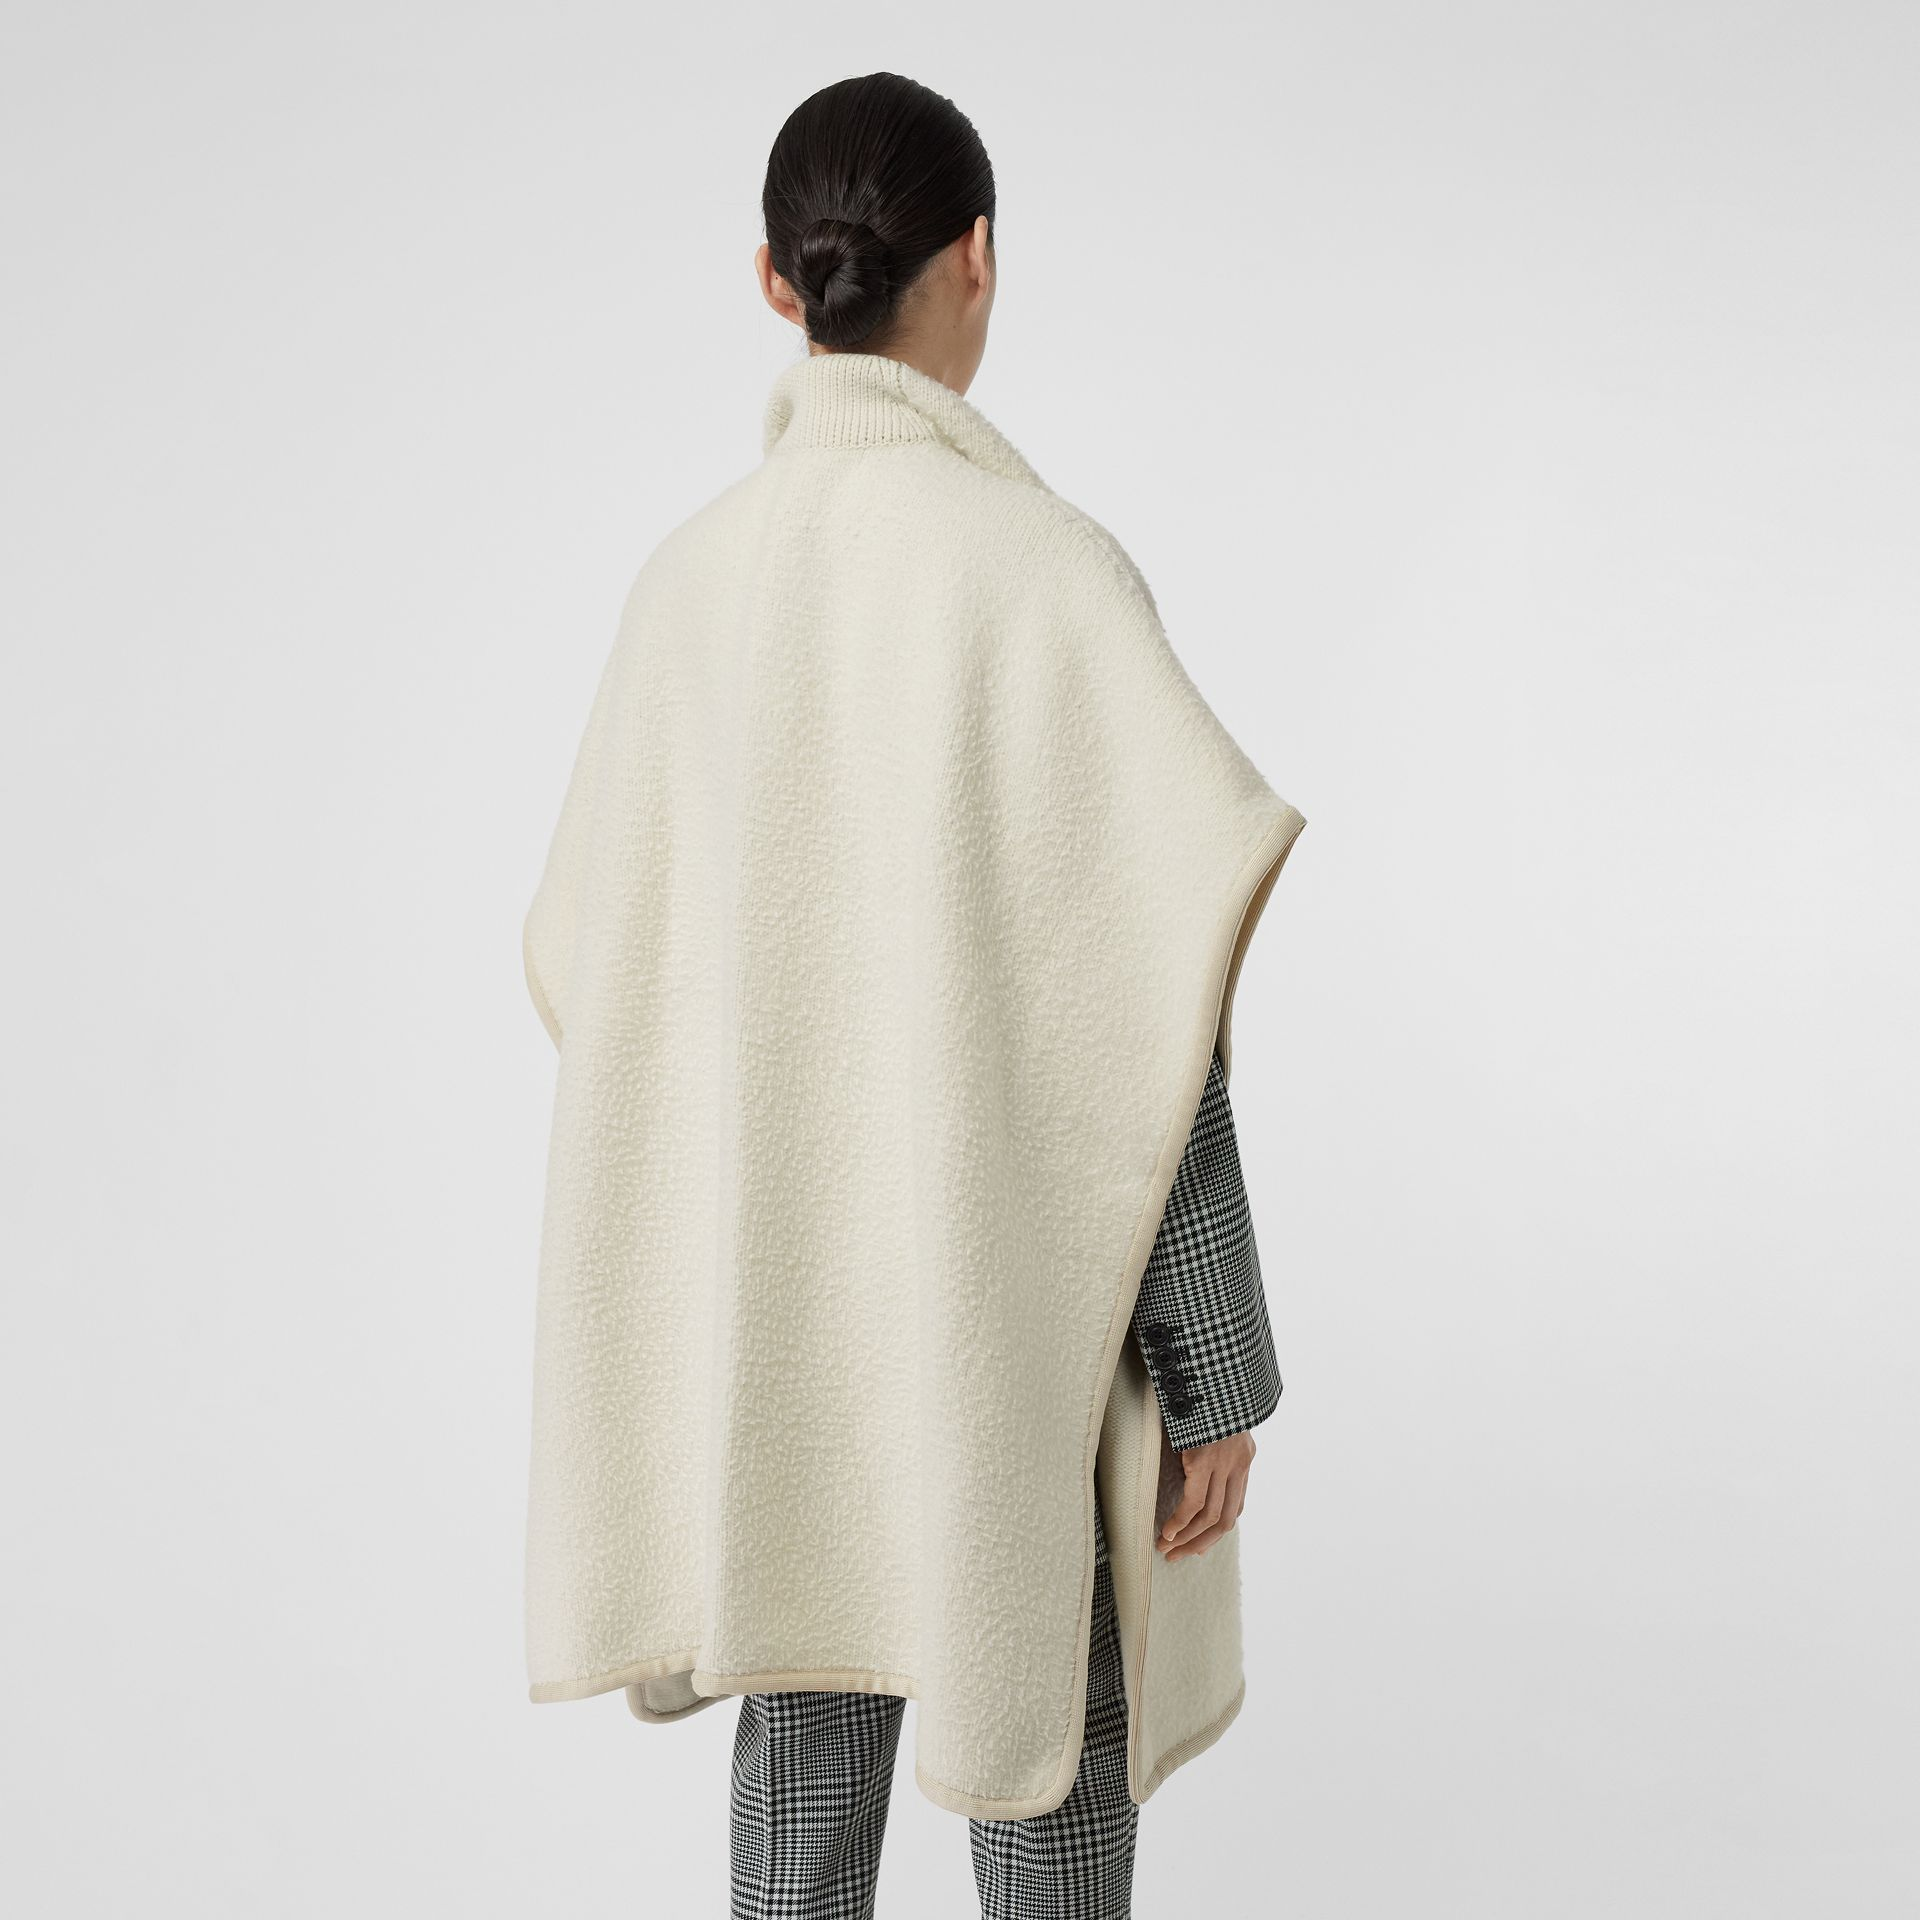 Wool Fleece Cape in Ivory - Women | Burberry Australia - gallery image 2